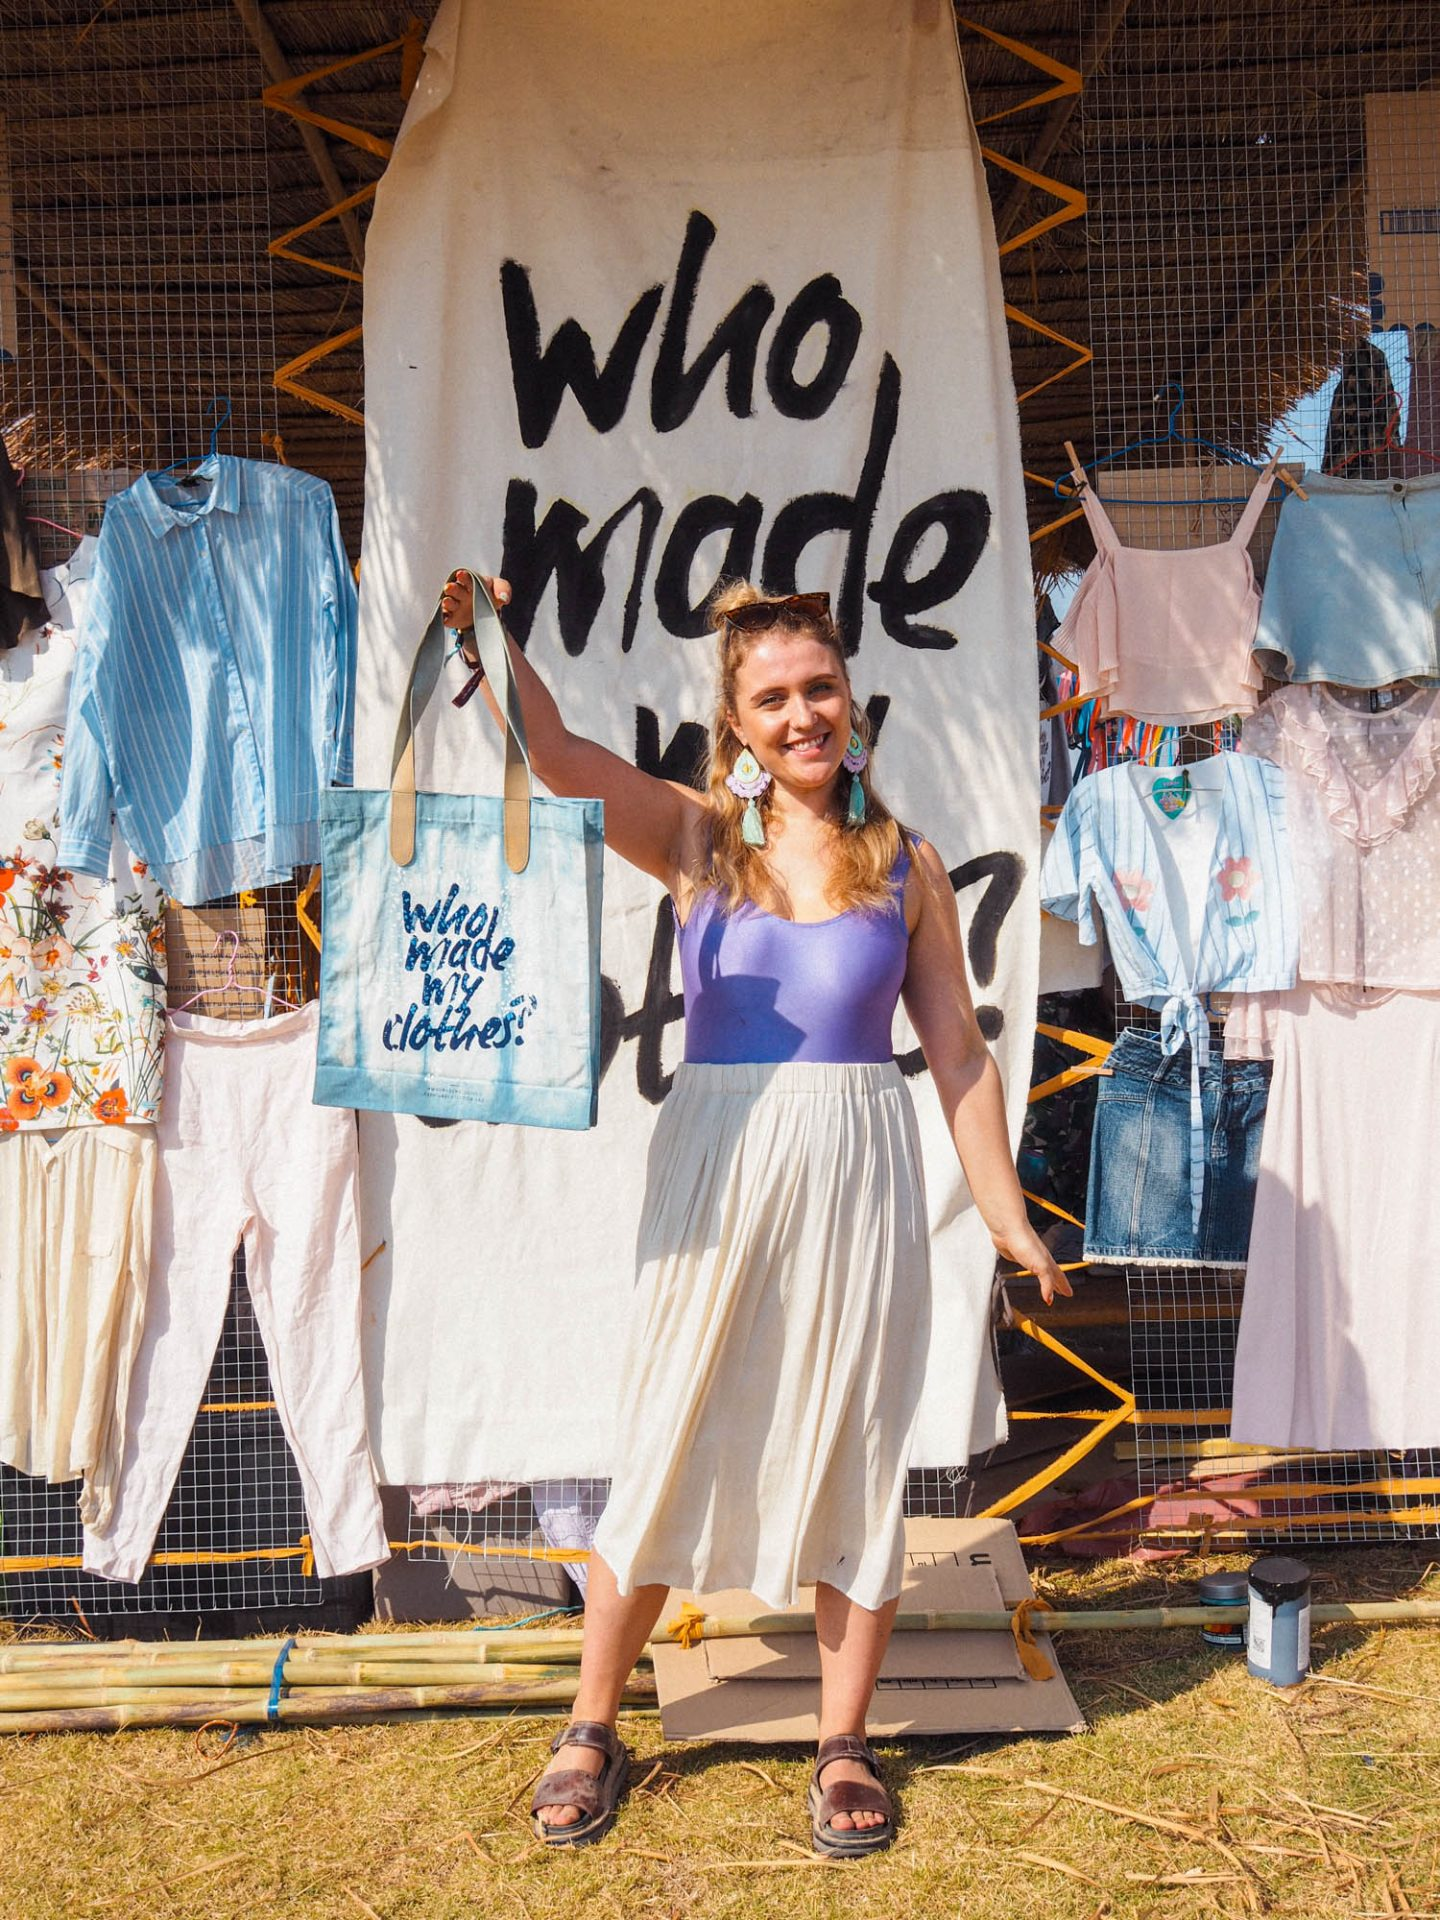 D.I.Y Tote Bag Upcycling Project at Wonder Fruit Festival